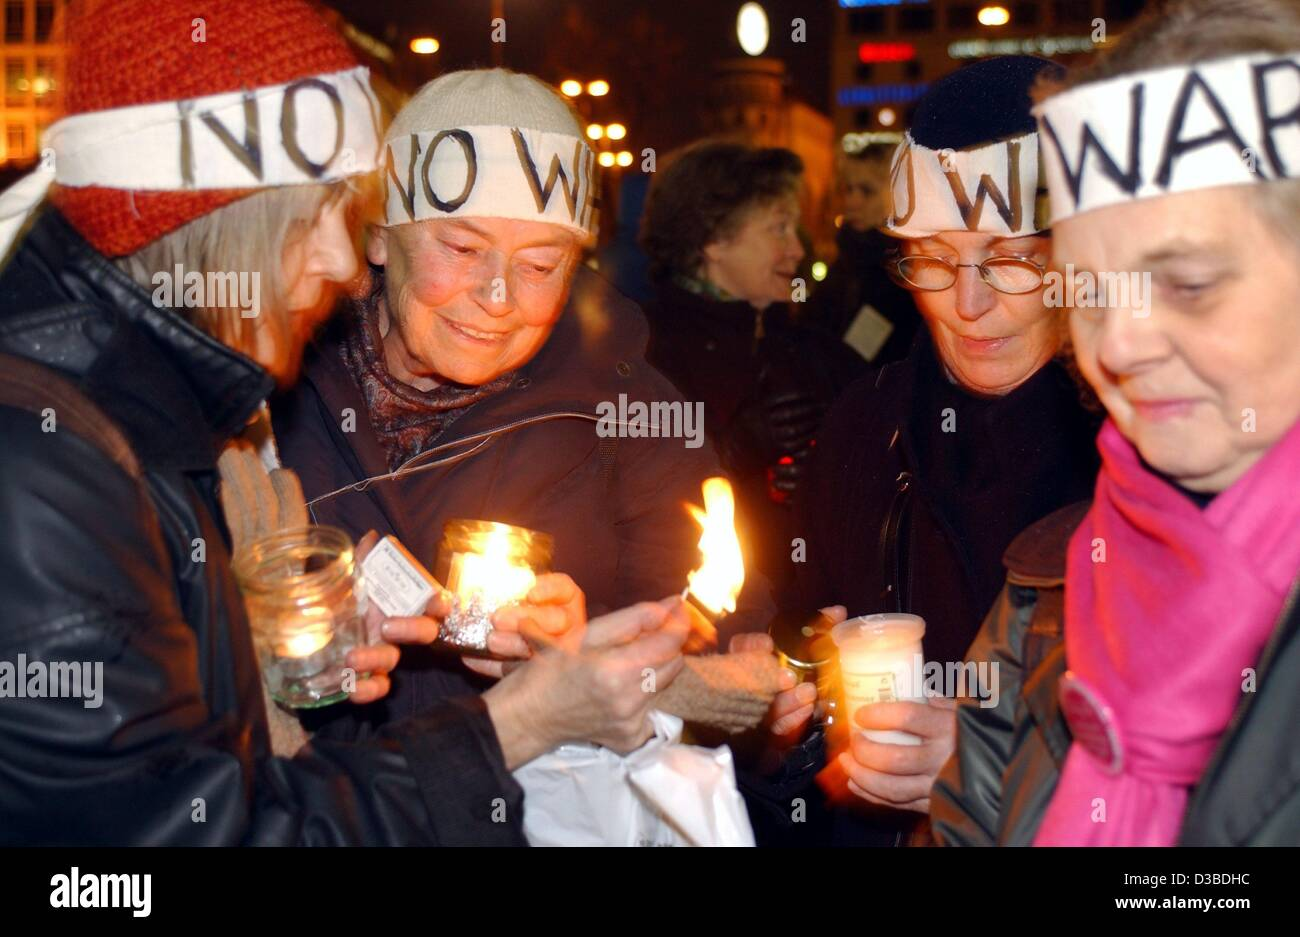 (dpa) - Protesters wear headbands with the writing 'no war' and light candles during a demonstration against - Stock Image